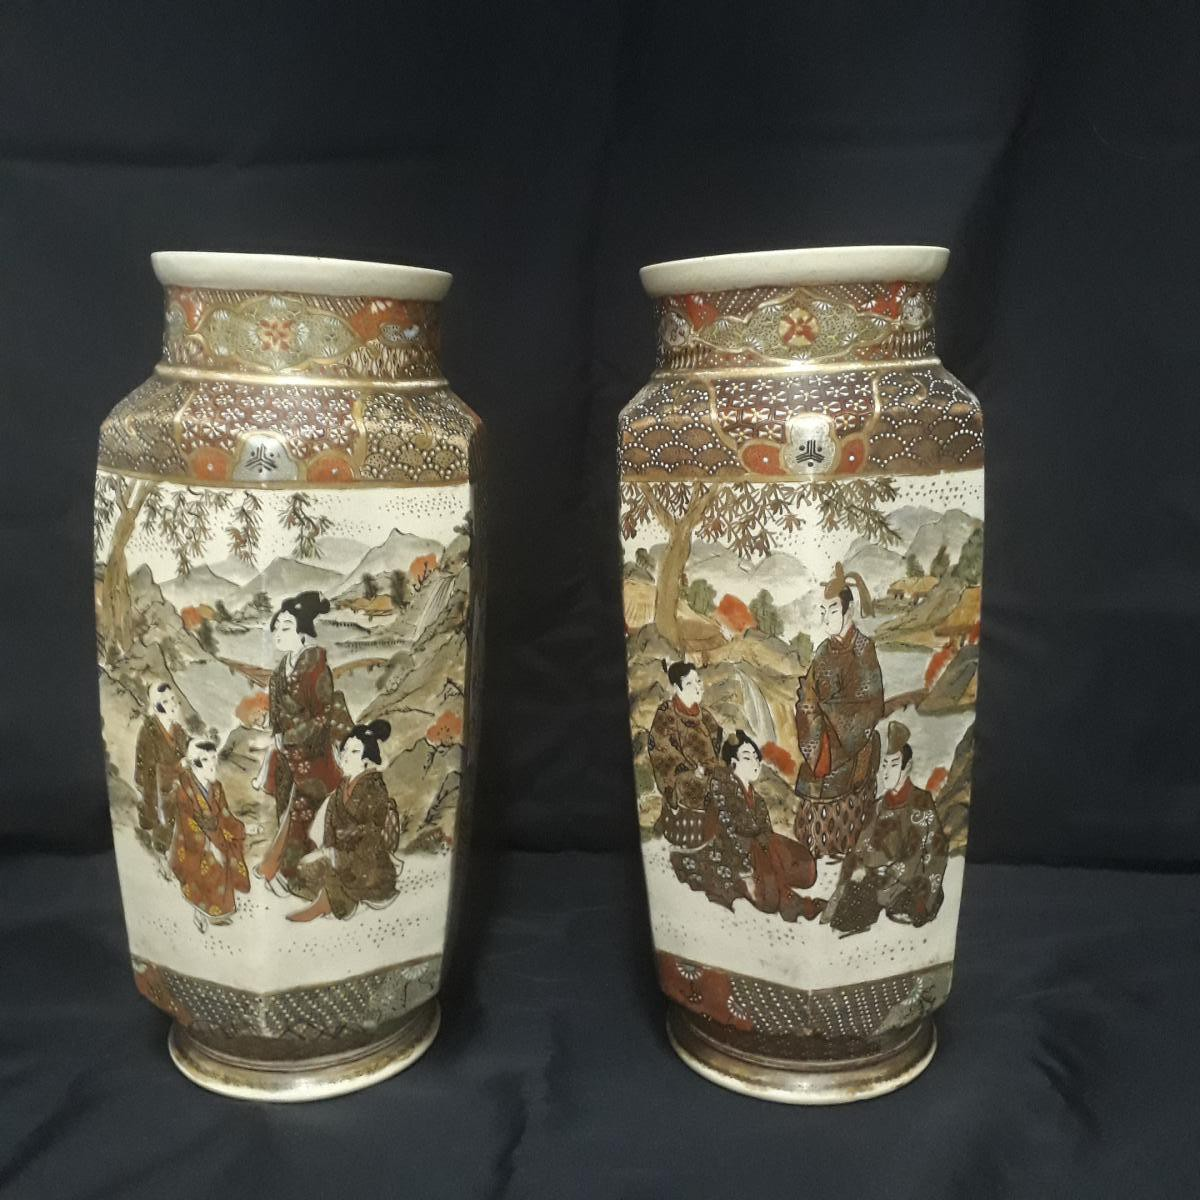 Antique twin vases